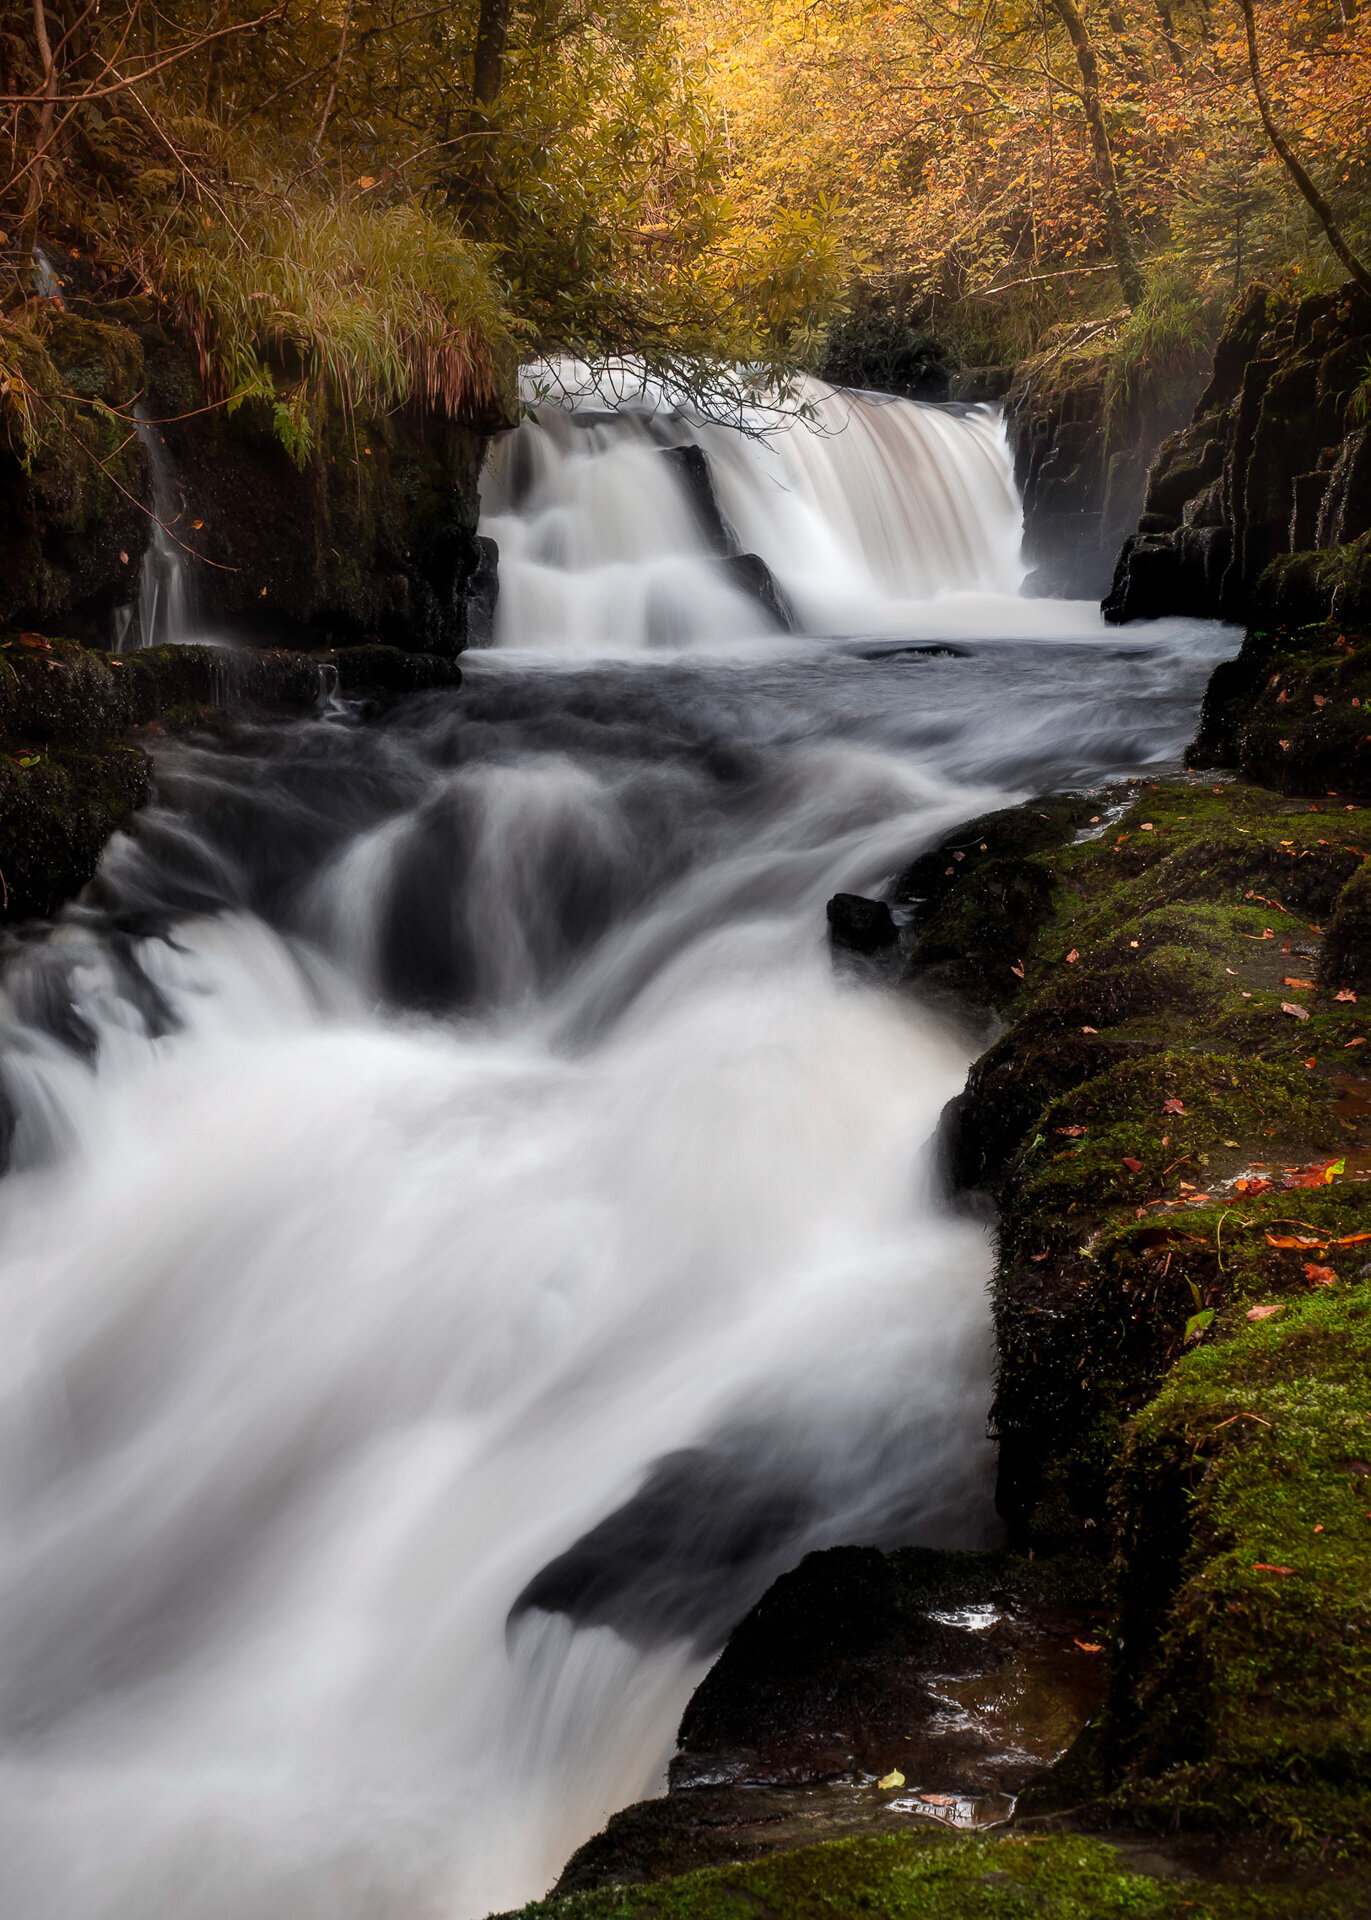 Autumn Falls: Shot at 24mm to give some compression and make that waterfall appear larger in the frame.